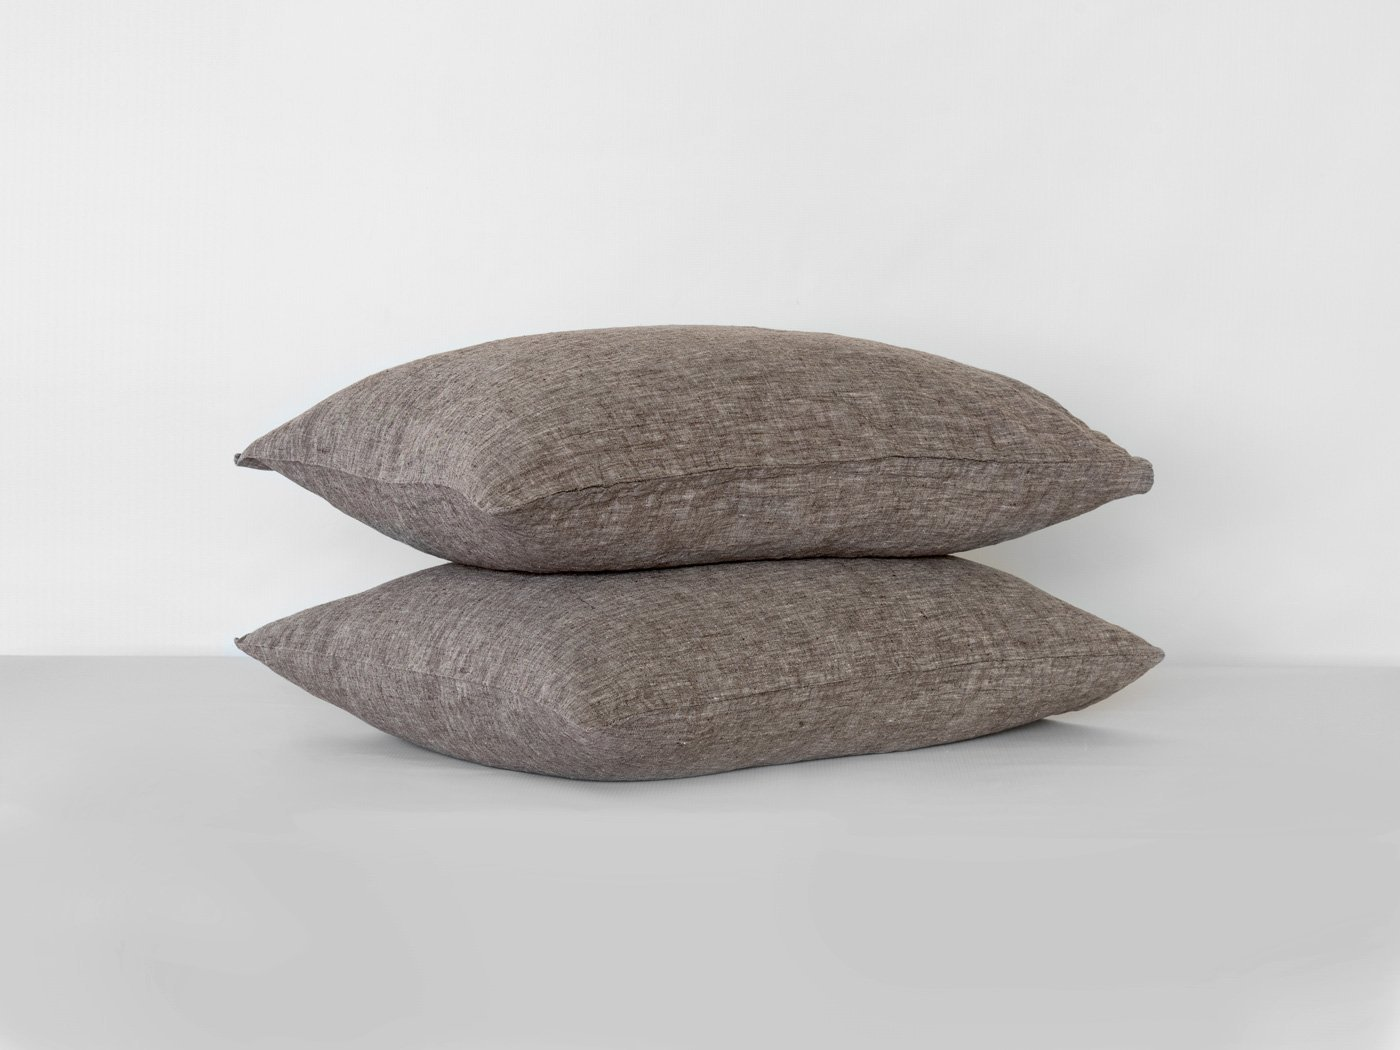 BEALINEN Linen Pillowcases Shams 2 pcs with Inside Pocket Closure Size EURO SQUARE 26''x26'' Dark Coffee Stone Gray Color Washed Softened European Linen